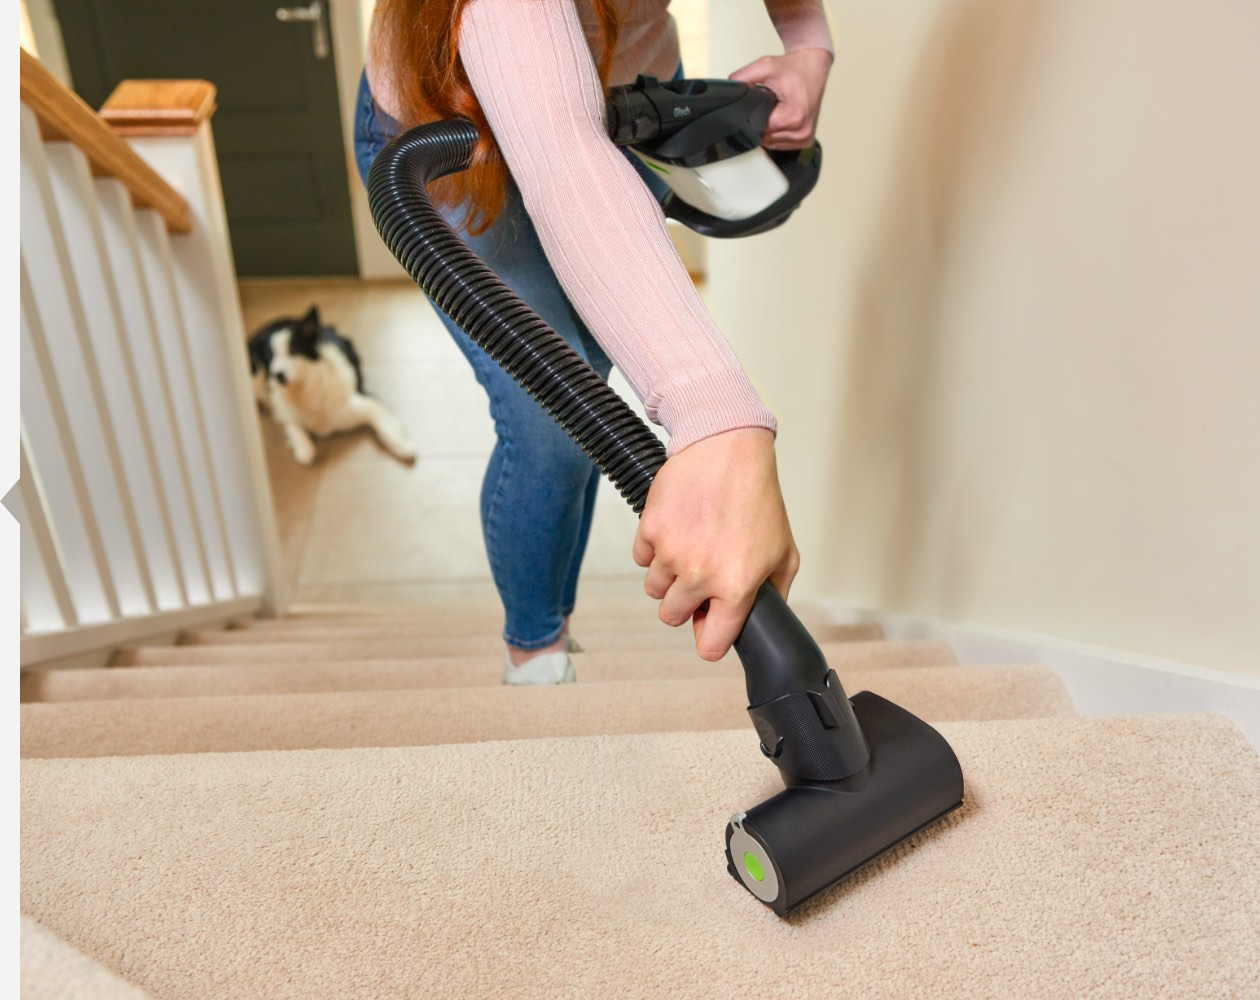 Woman using ProLite handheld vacuum with flexible hose attachment to vacuum stairs